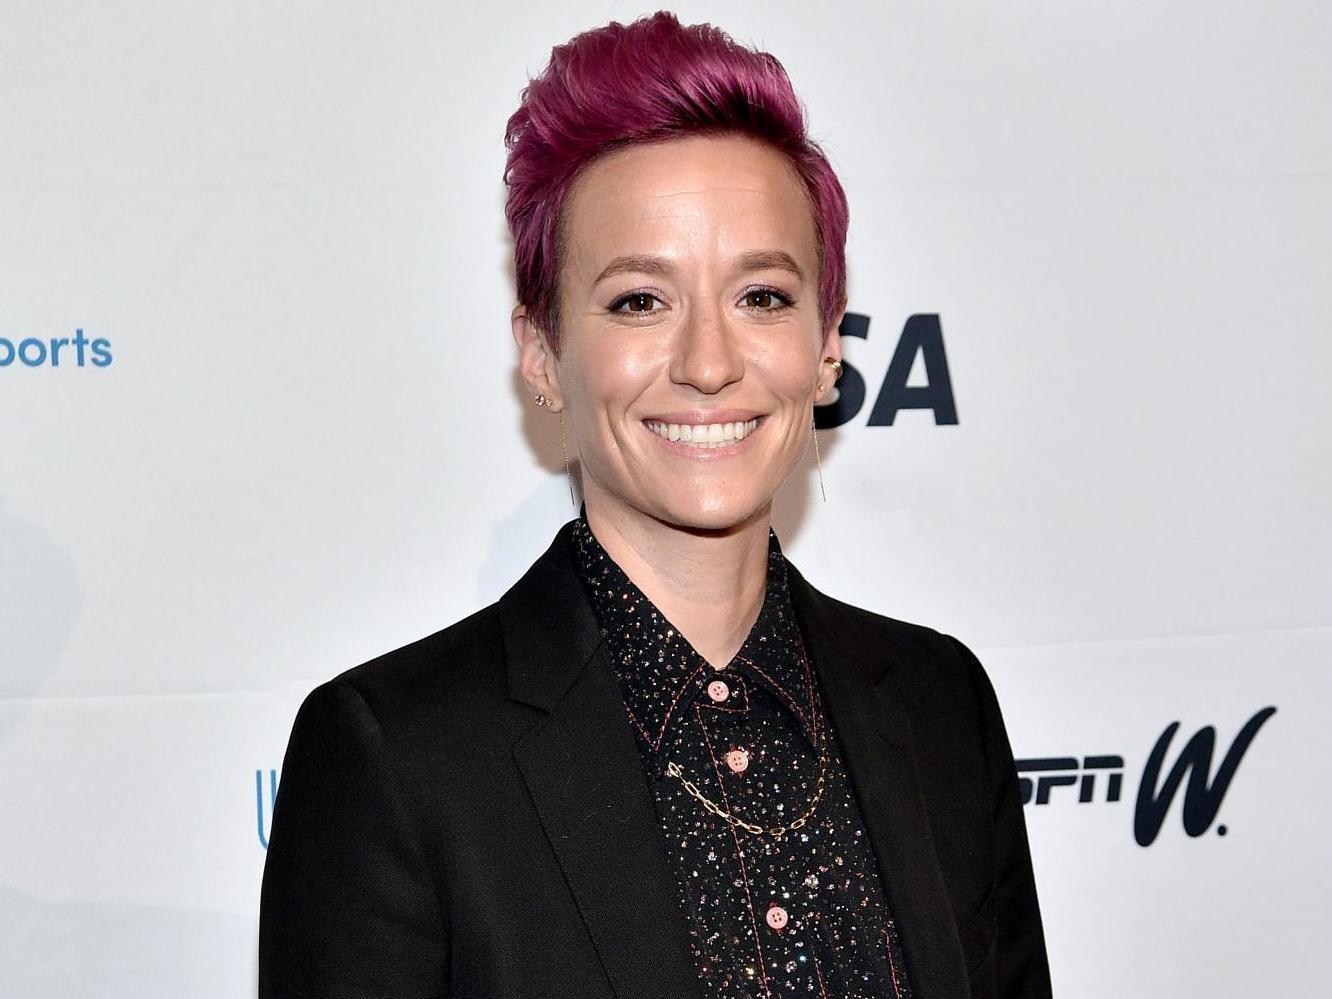 Megan Rapinoe calls on women to 'fight like hell' in battle for equal pay